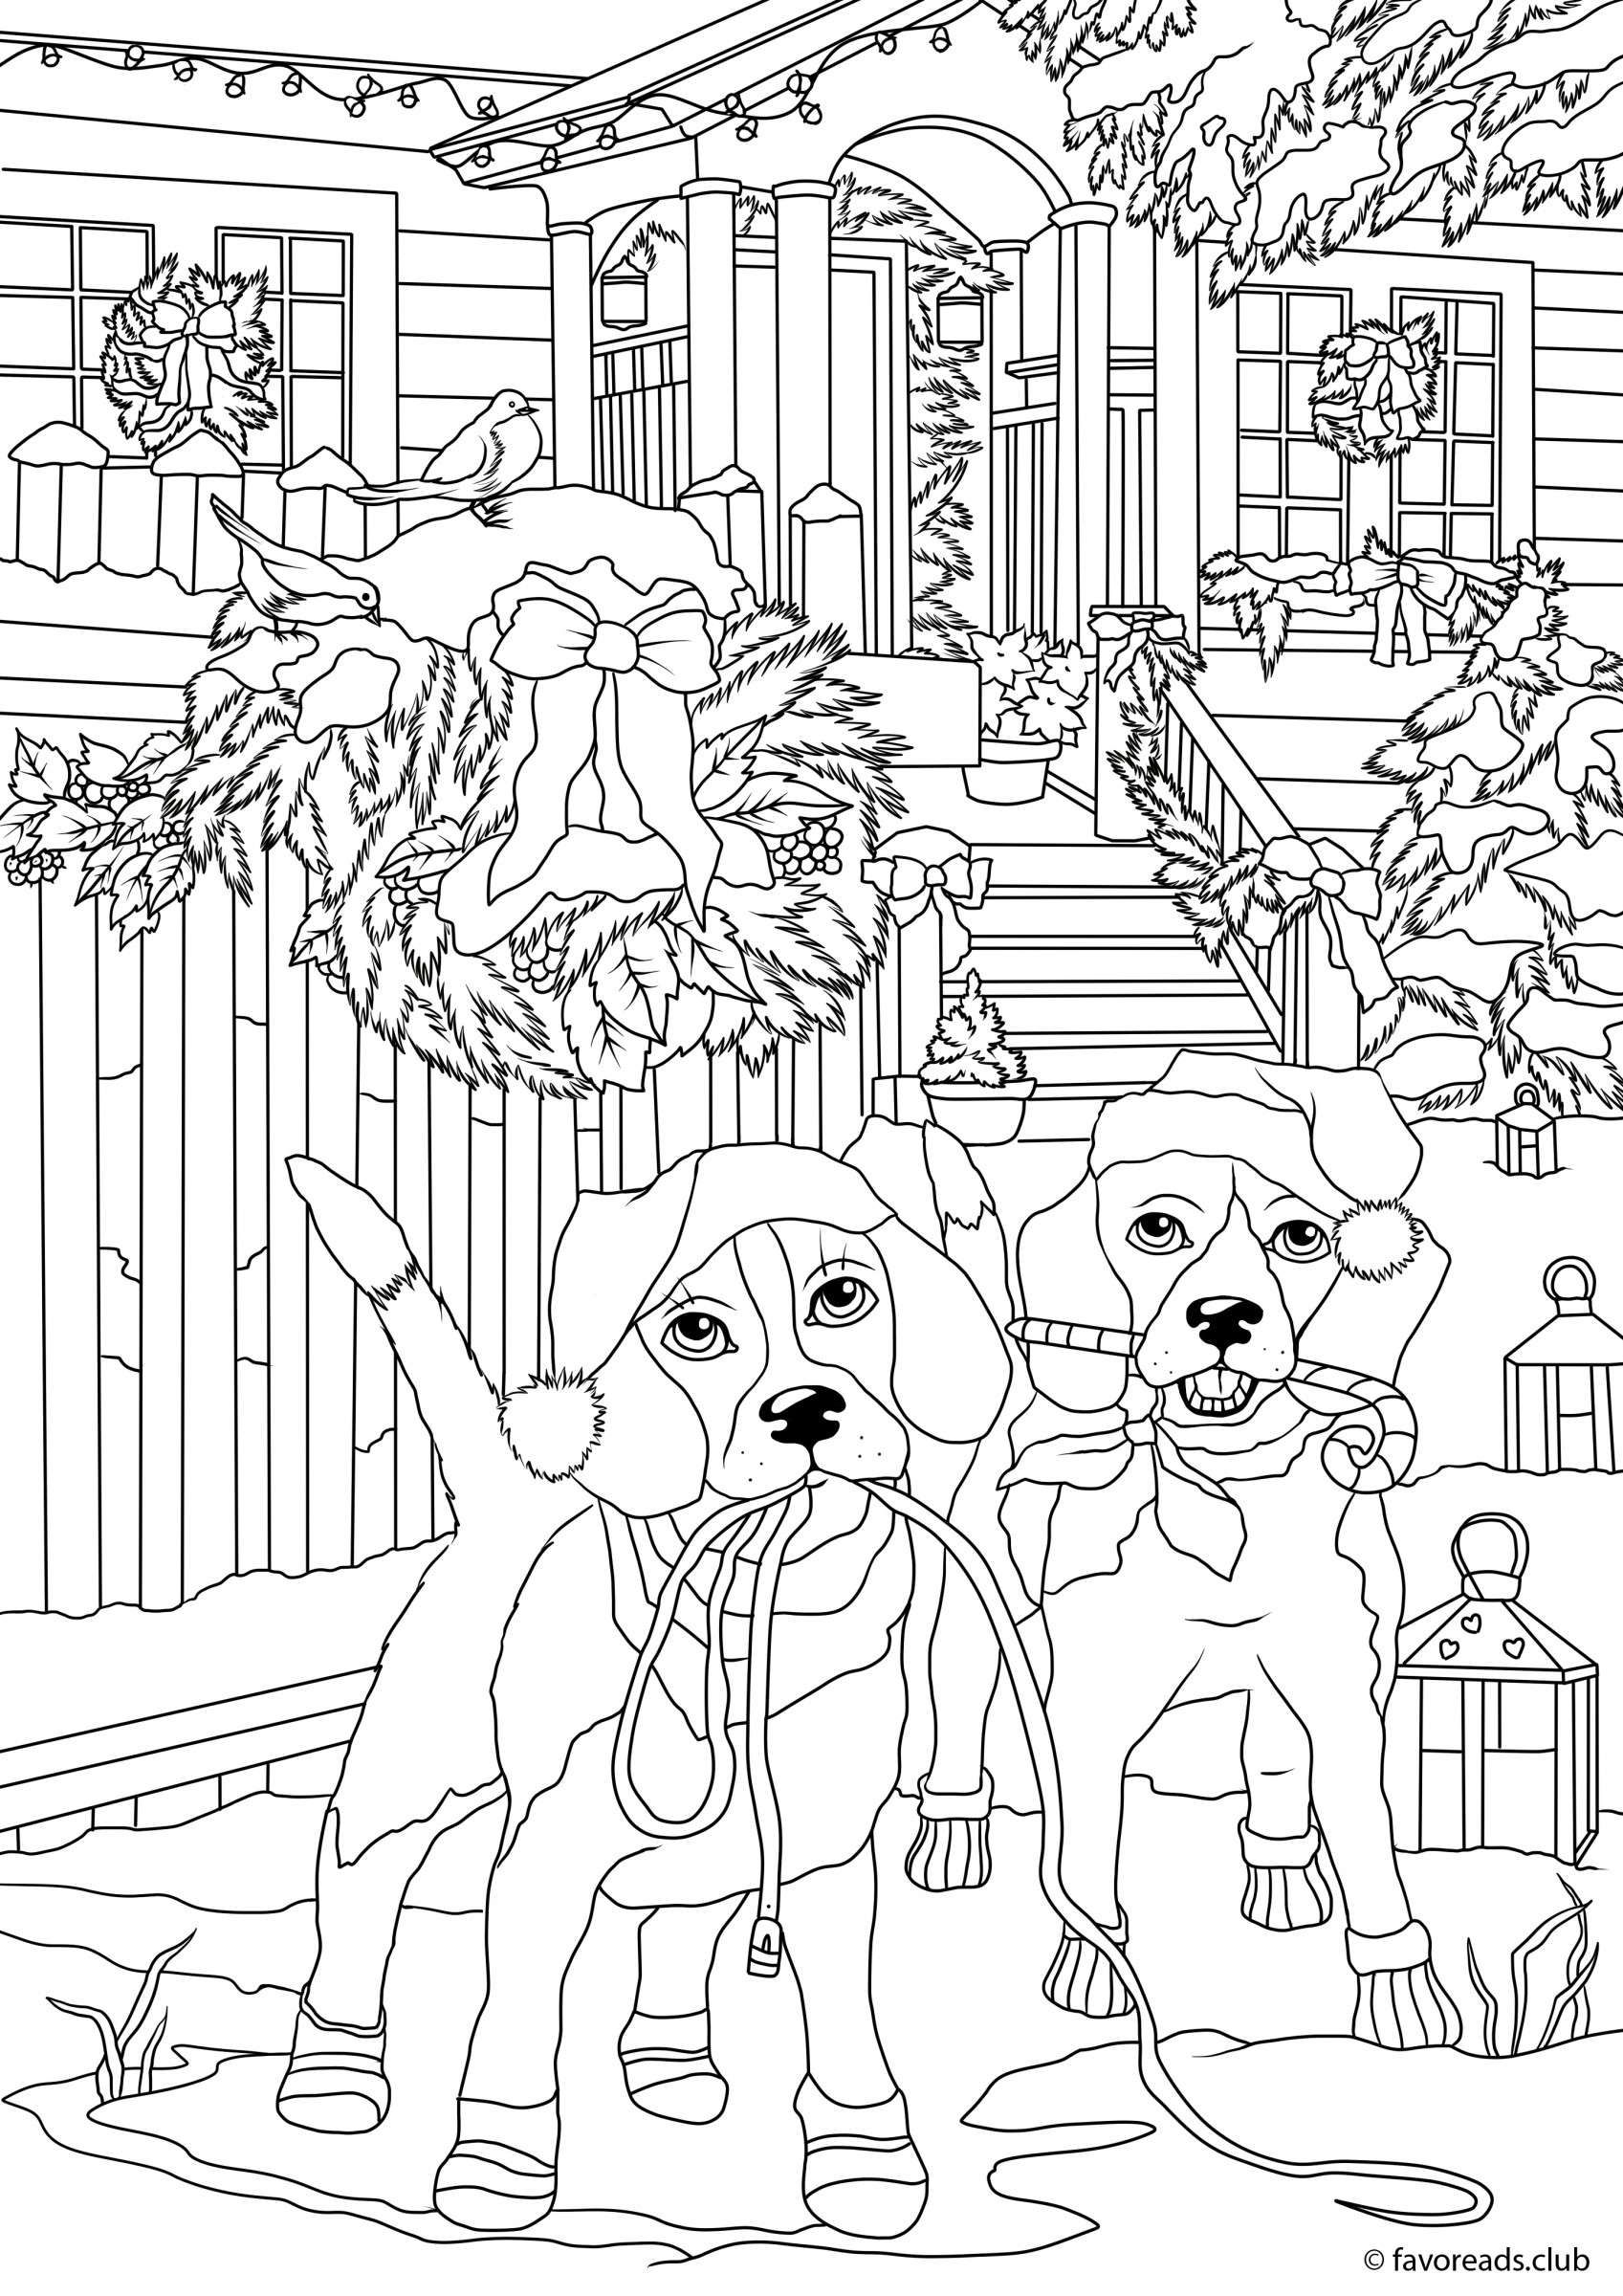 A Puppy For Christmas Coloring Pages Puppy Coloring Pages Dog Coloring Book Dog Coloring Page